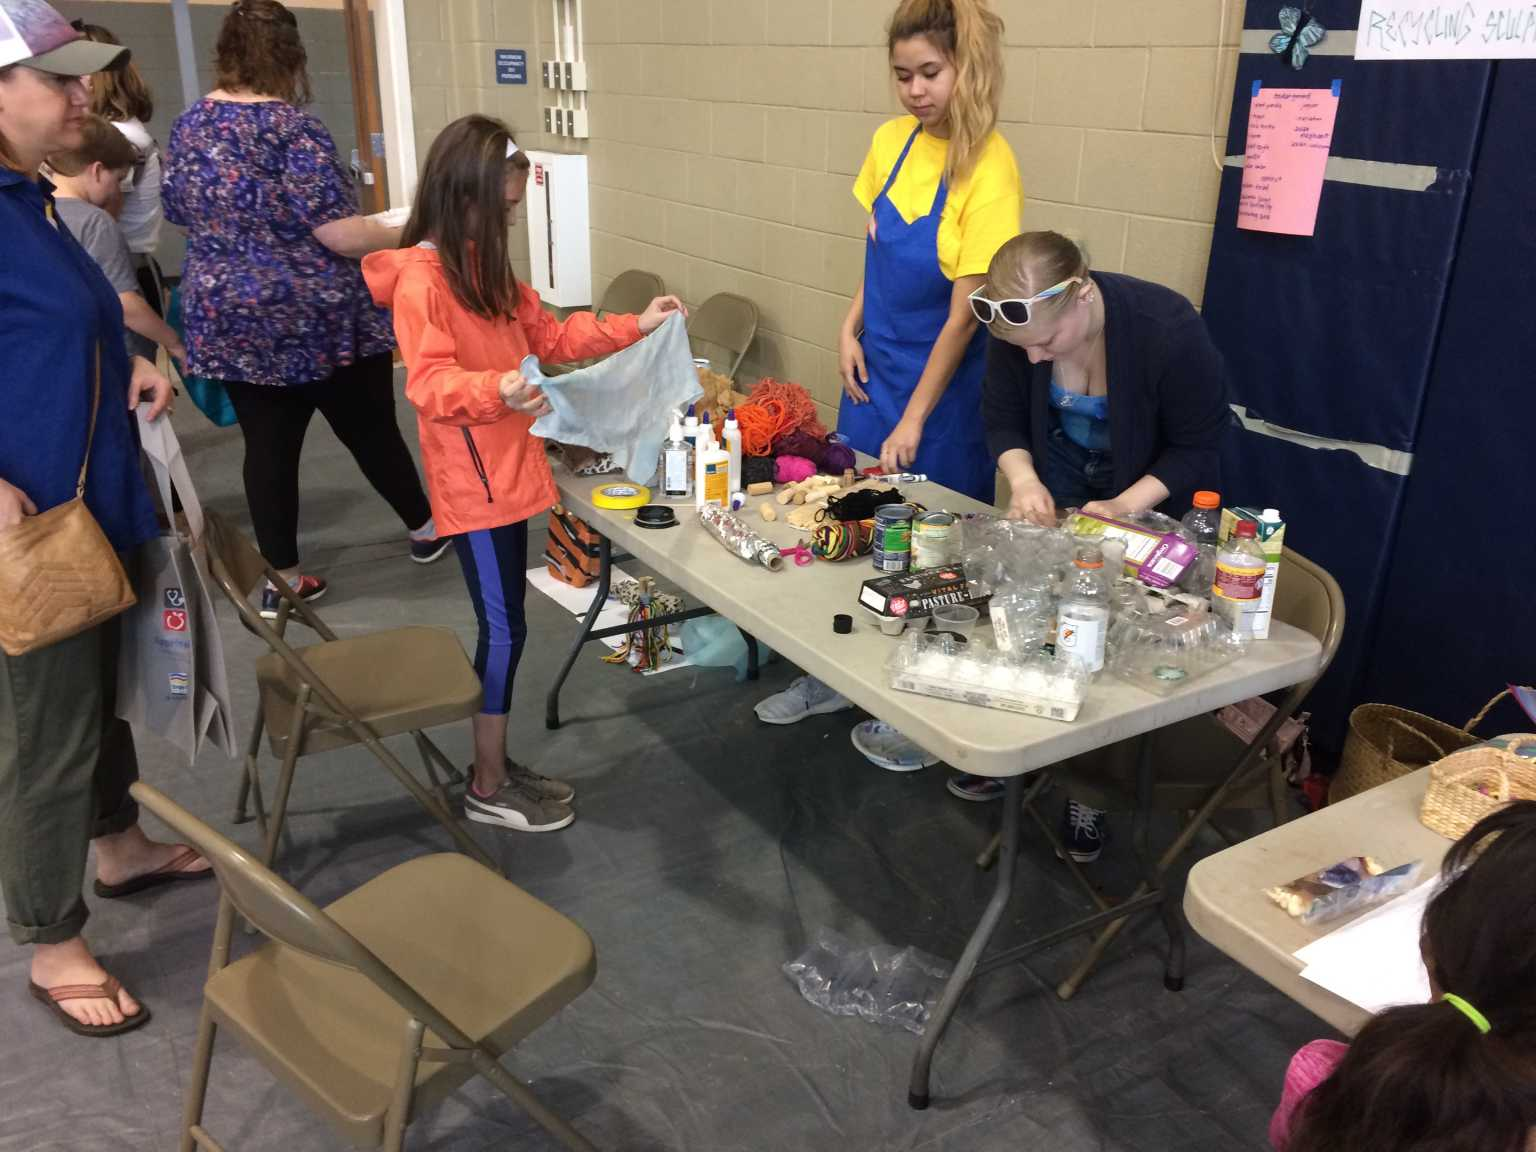 Elementary Ed. students work with young people to create environmental artwork with recycled materials at the BUILD Fest event in Boone